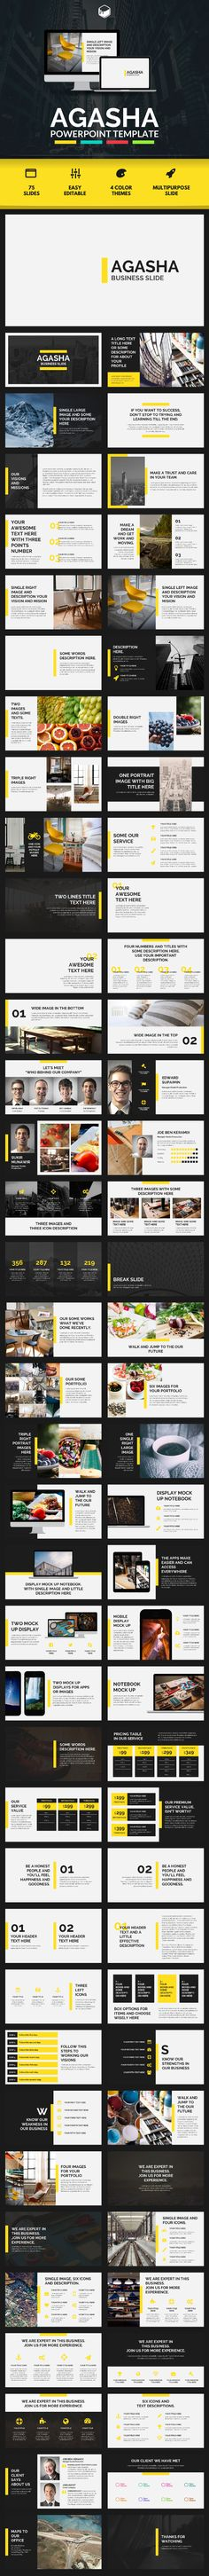 AGASHA  PowerPoint Template  #flow #proposal • Download ➝ https://graphicriver.net/item/agasha-powerpoint-template/18373950?ref=pxcr